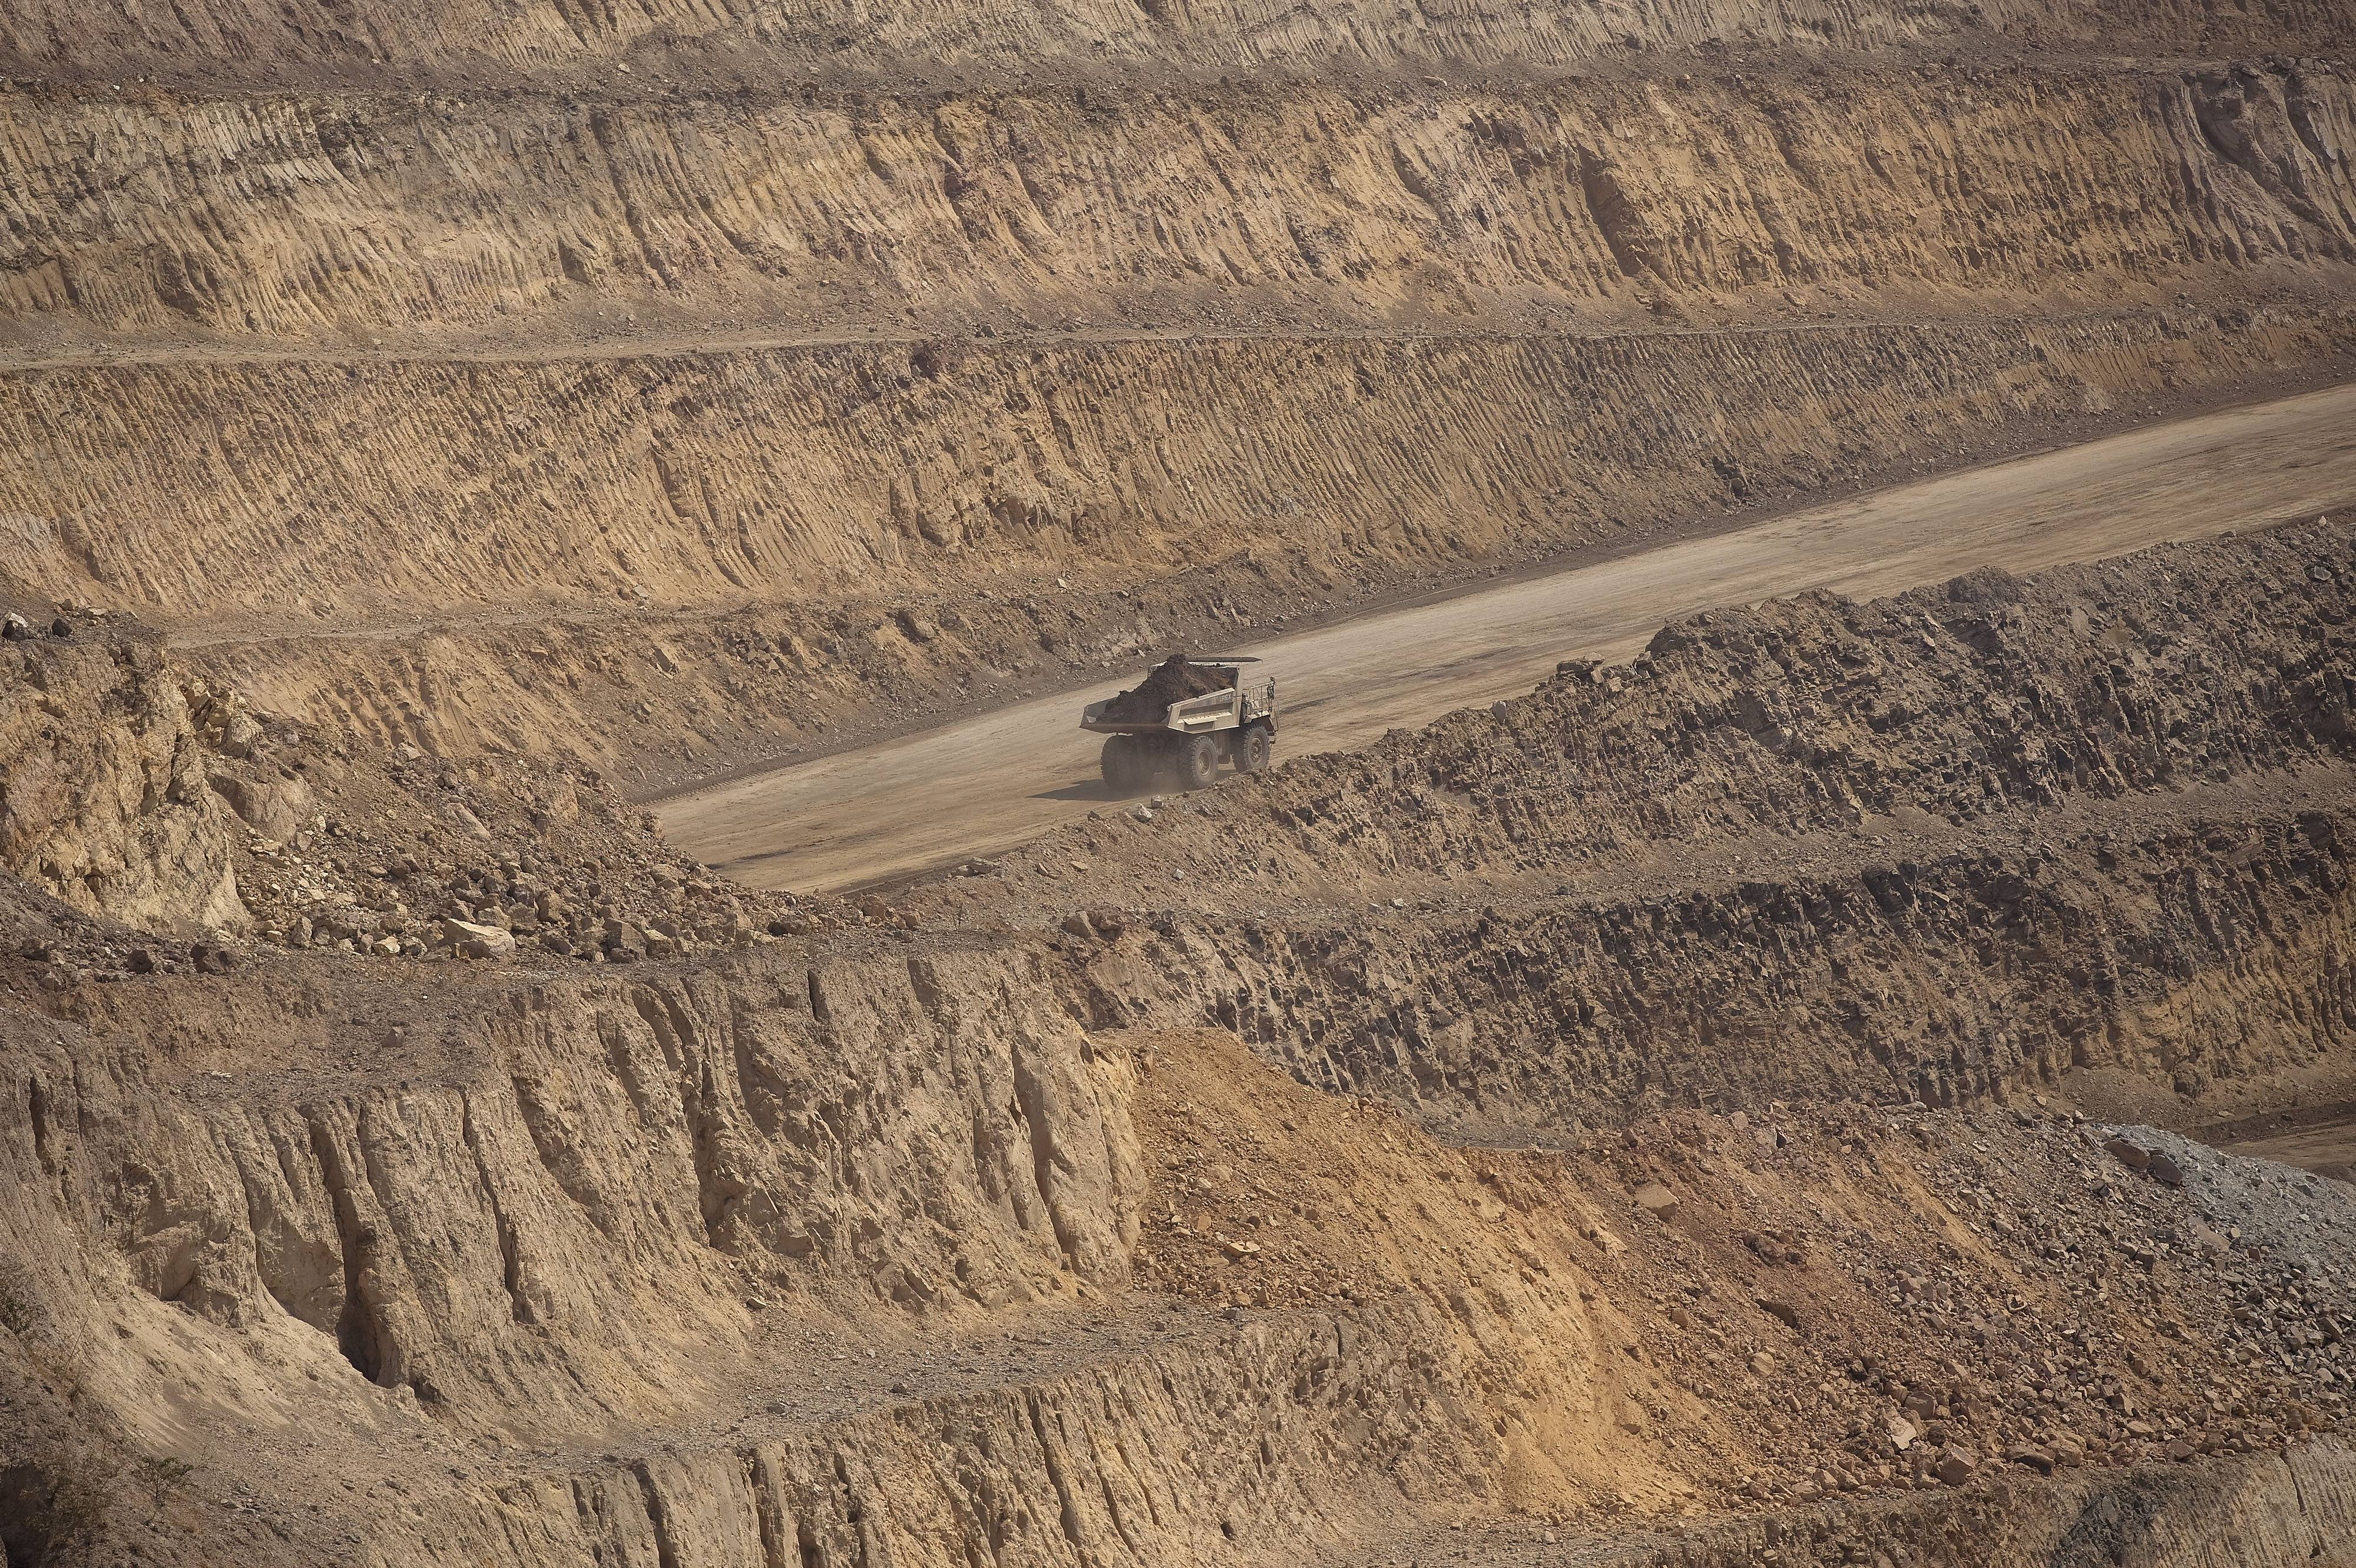 Ore is driven to a processing plant earlier this week in a Caterpillar Inc. mining truck after being excavated from an open pit at Katanga Mining Ltd.'s KOV copper and cobalt mine in Kolwezi, Katanga province, Democratic Republic of Congo.